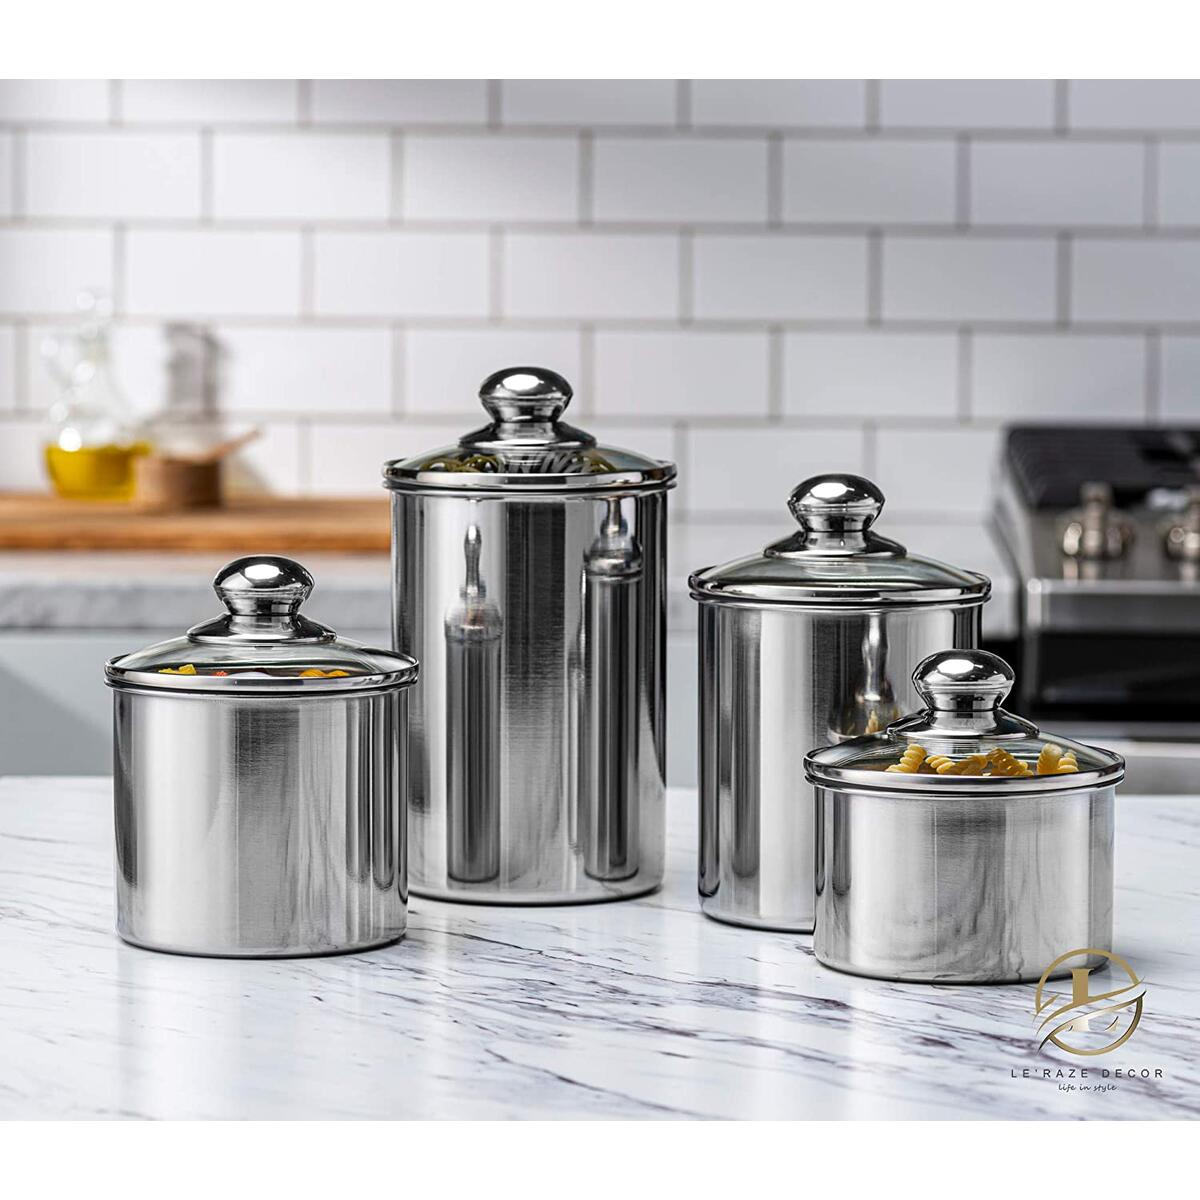 Le'raze Food Storage Container for Kitchen Counter with Marker & Labels, [Set of 4] Stainless Steel Pot-Like Canister Set, Ideal for Flour Tea, Sugar, Coffee, Candy, Cookie Jar